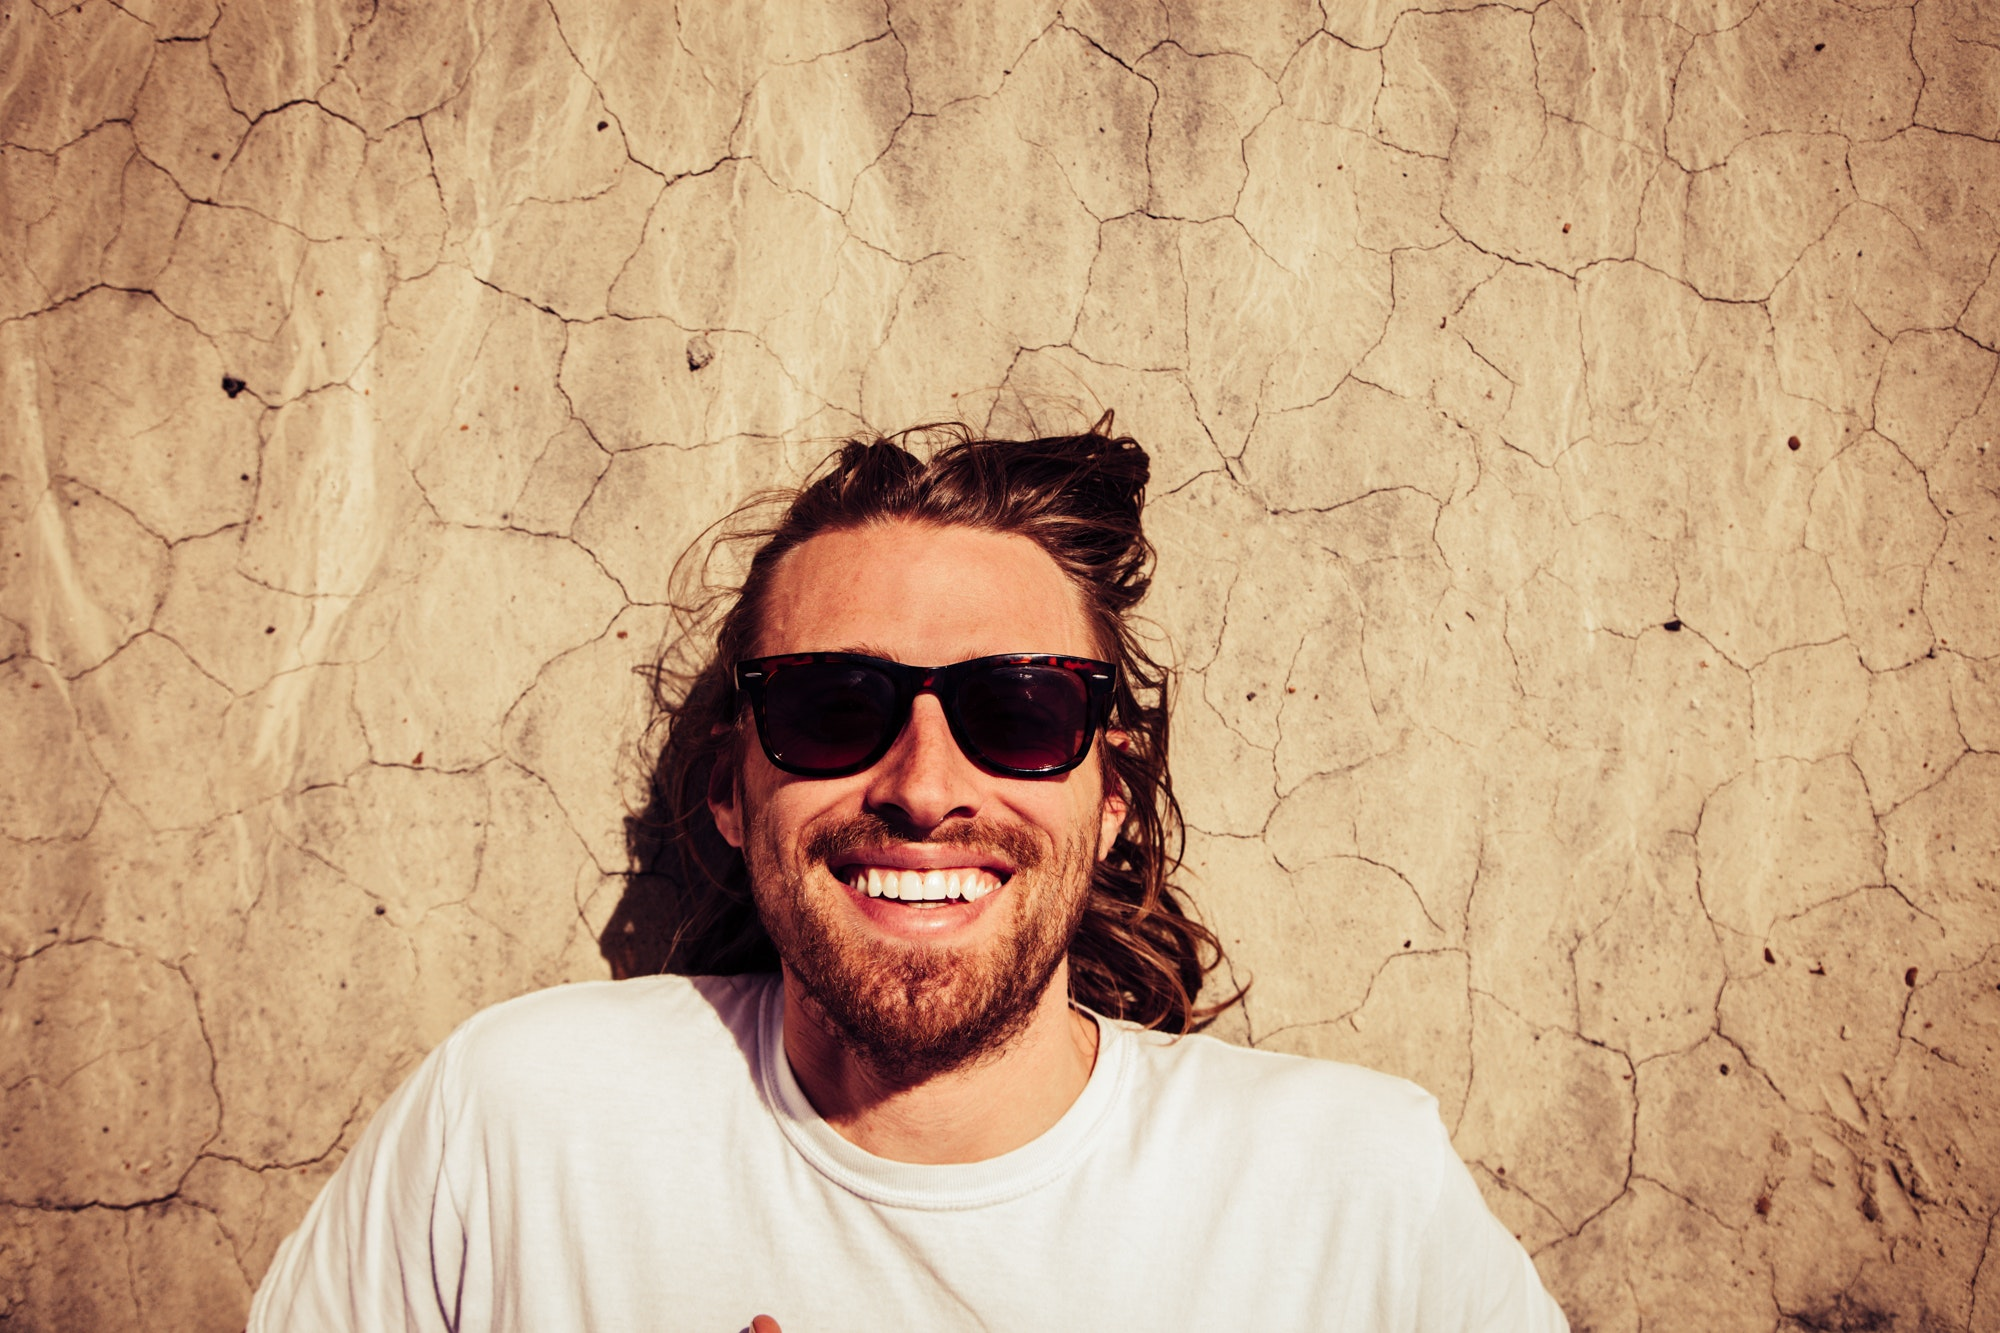 Man with long hair smiling wearing sunglasses while laying on floor.